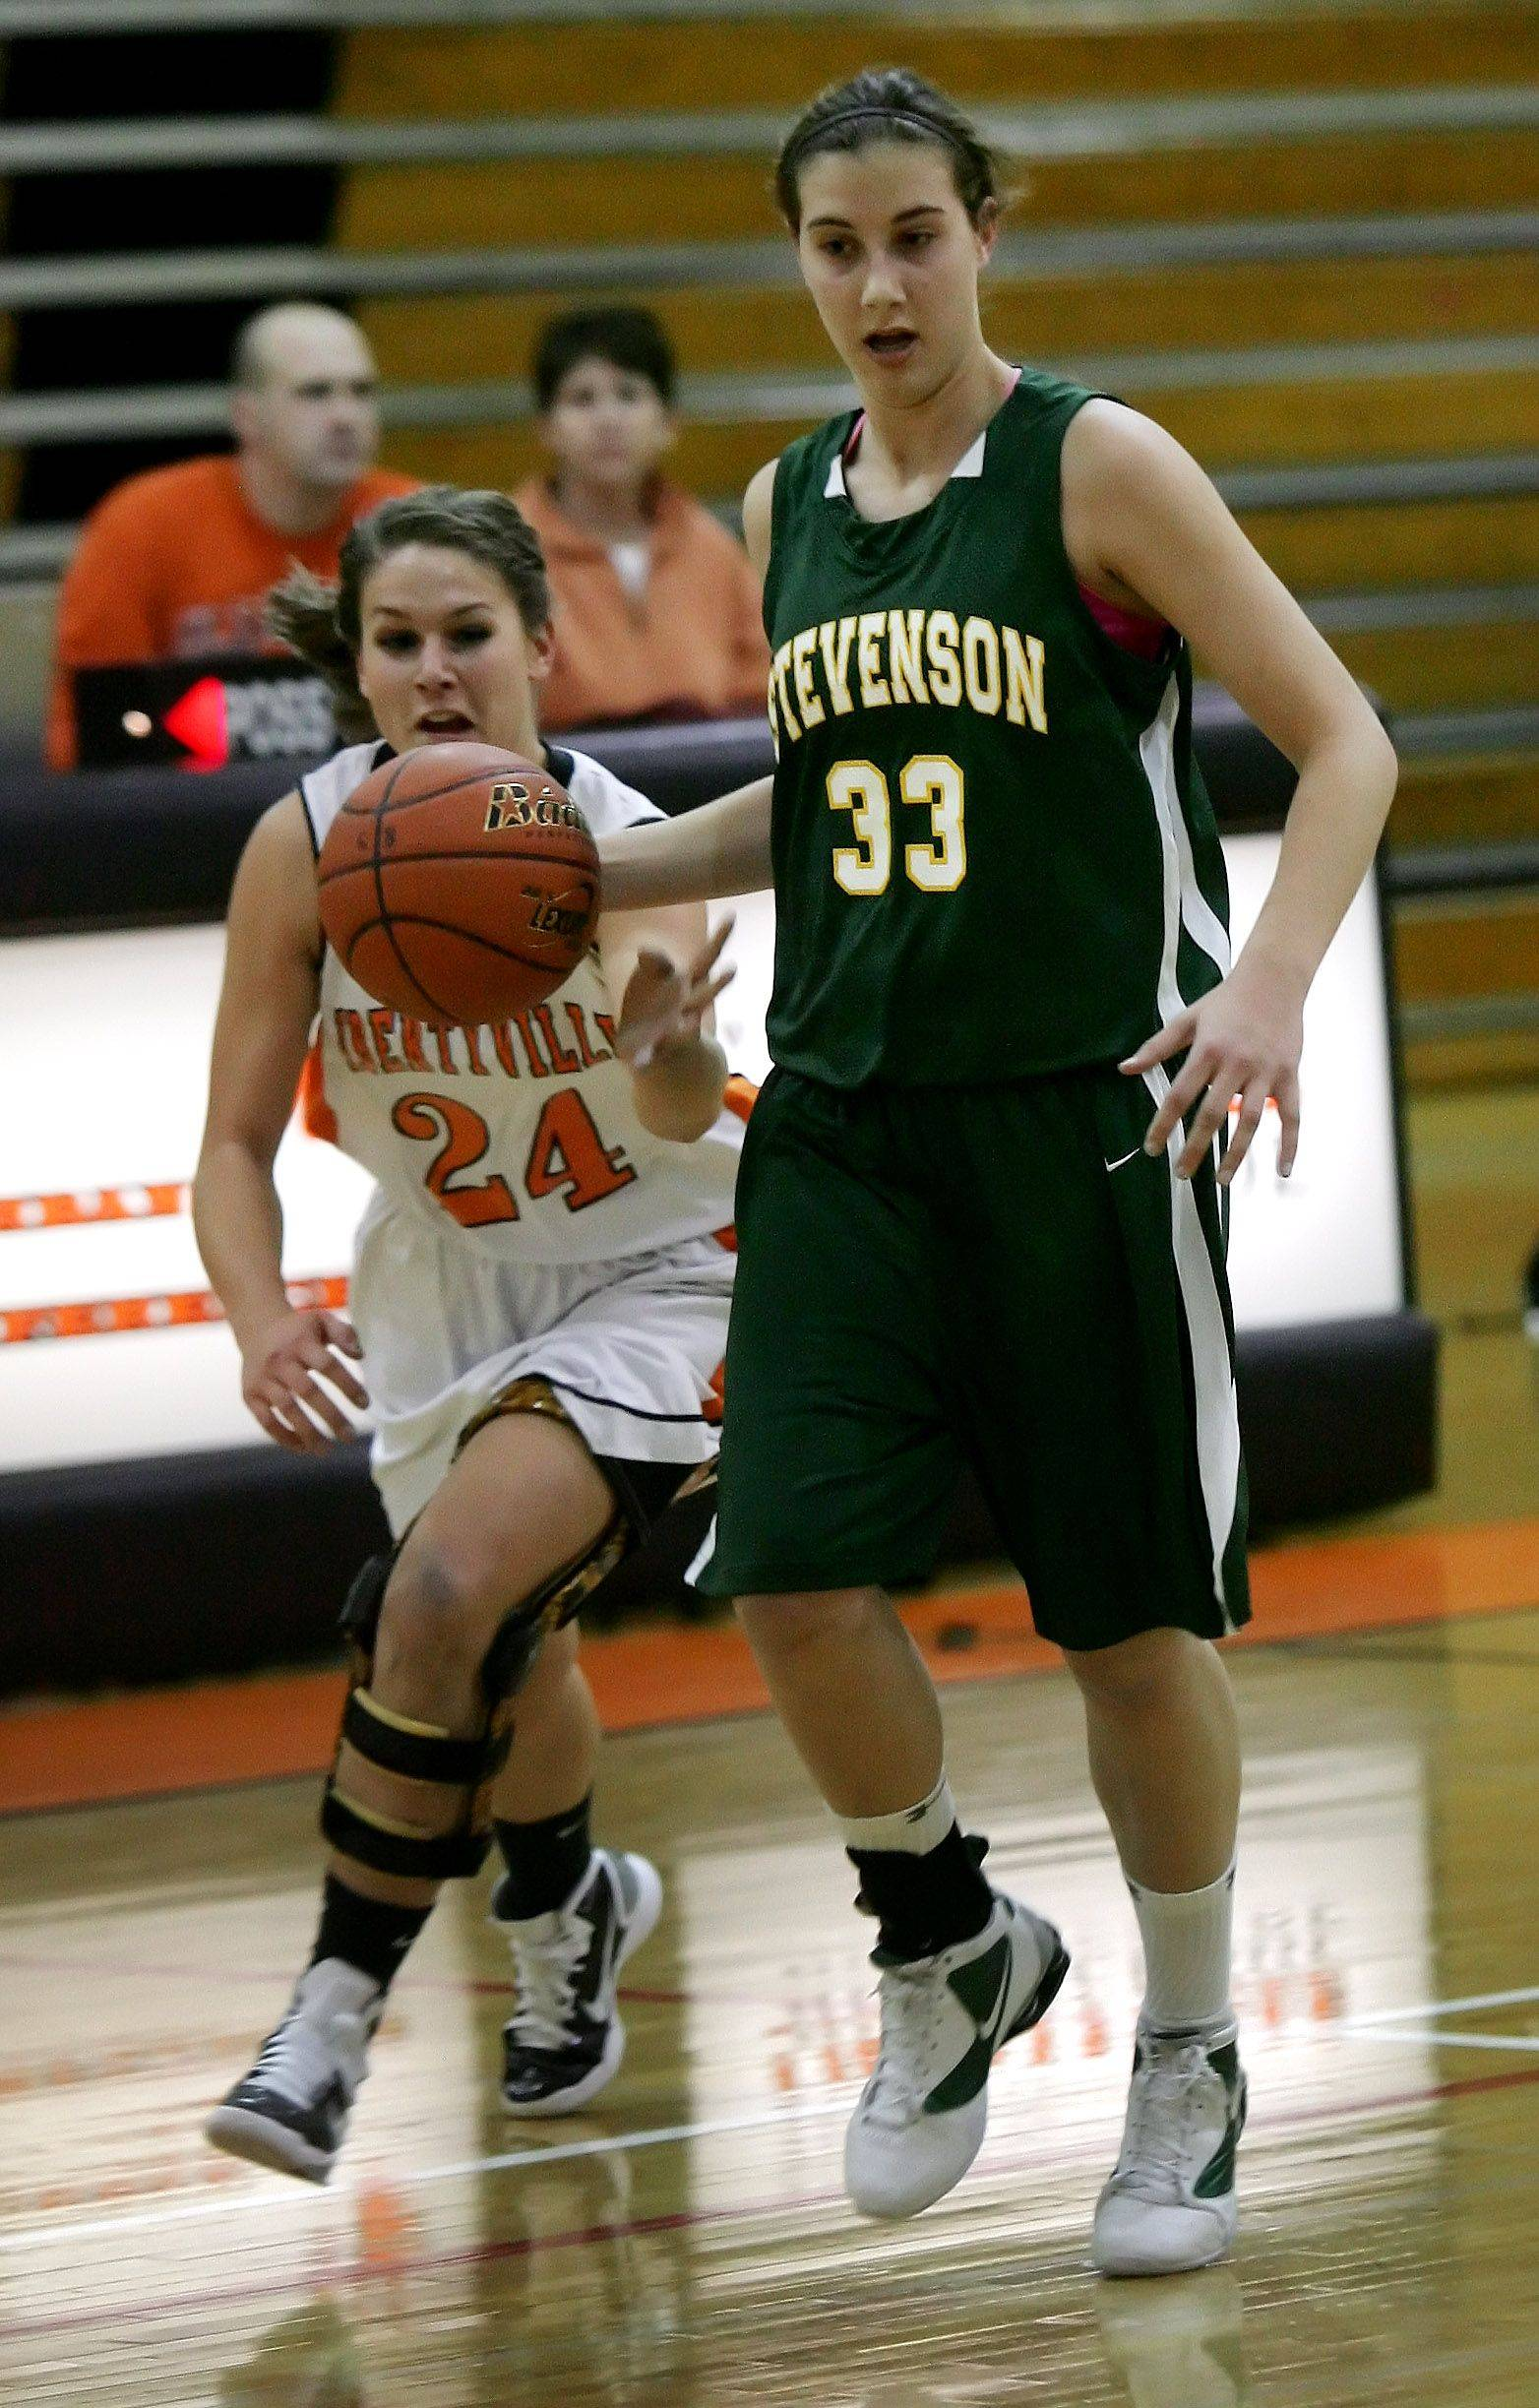 Libertyville forward Kaca Savatic comes from behind to steal the ball from Stevenson forward Michelle O'Brien.